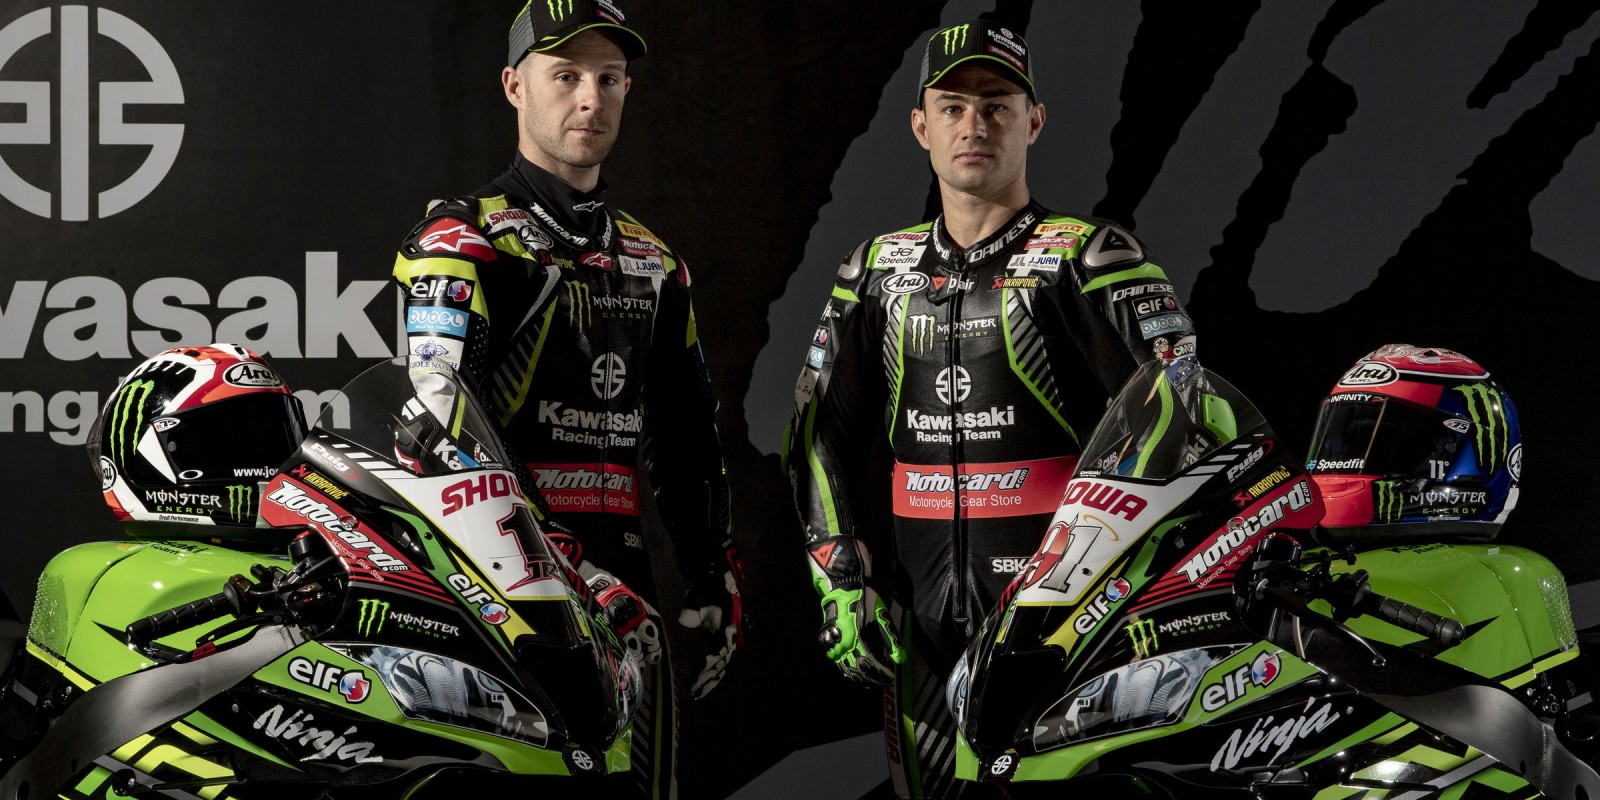 Jonathan Rea and Leon Haslam at the 2019 Monster Energy Kawasaki Photoshoot